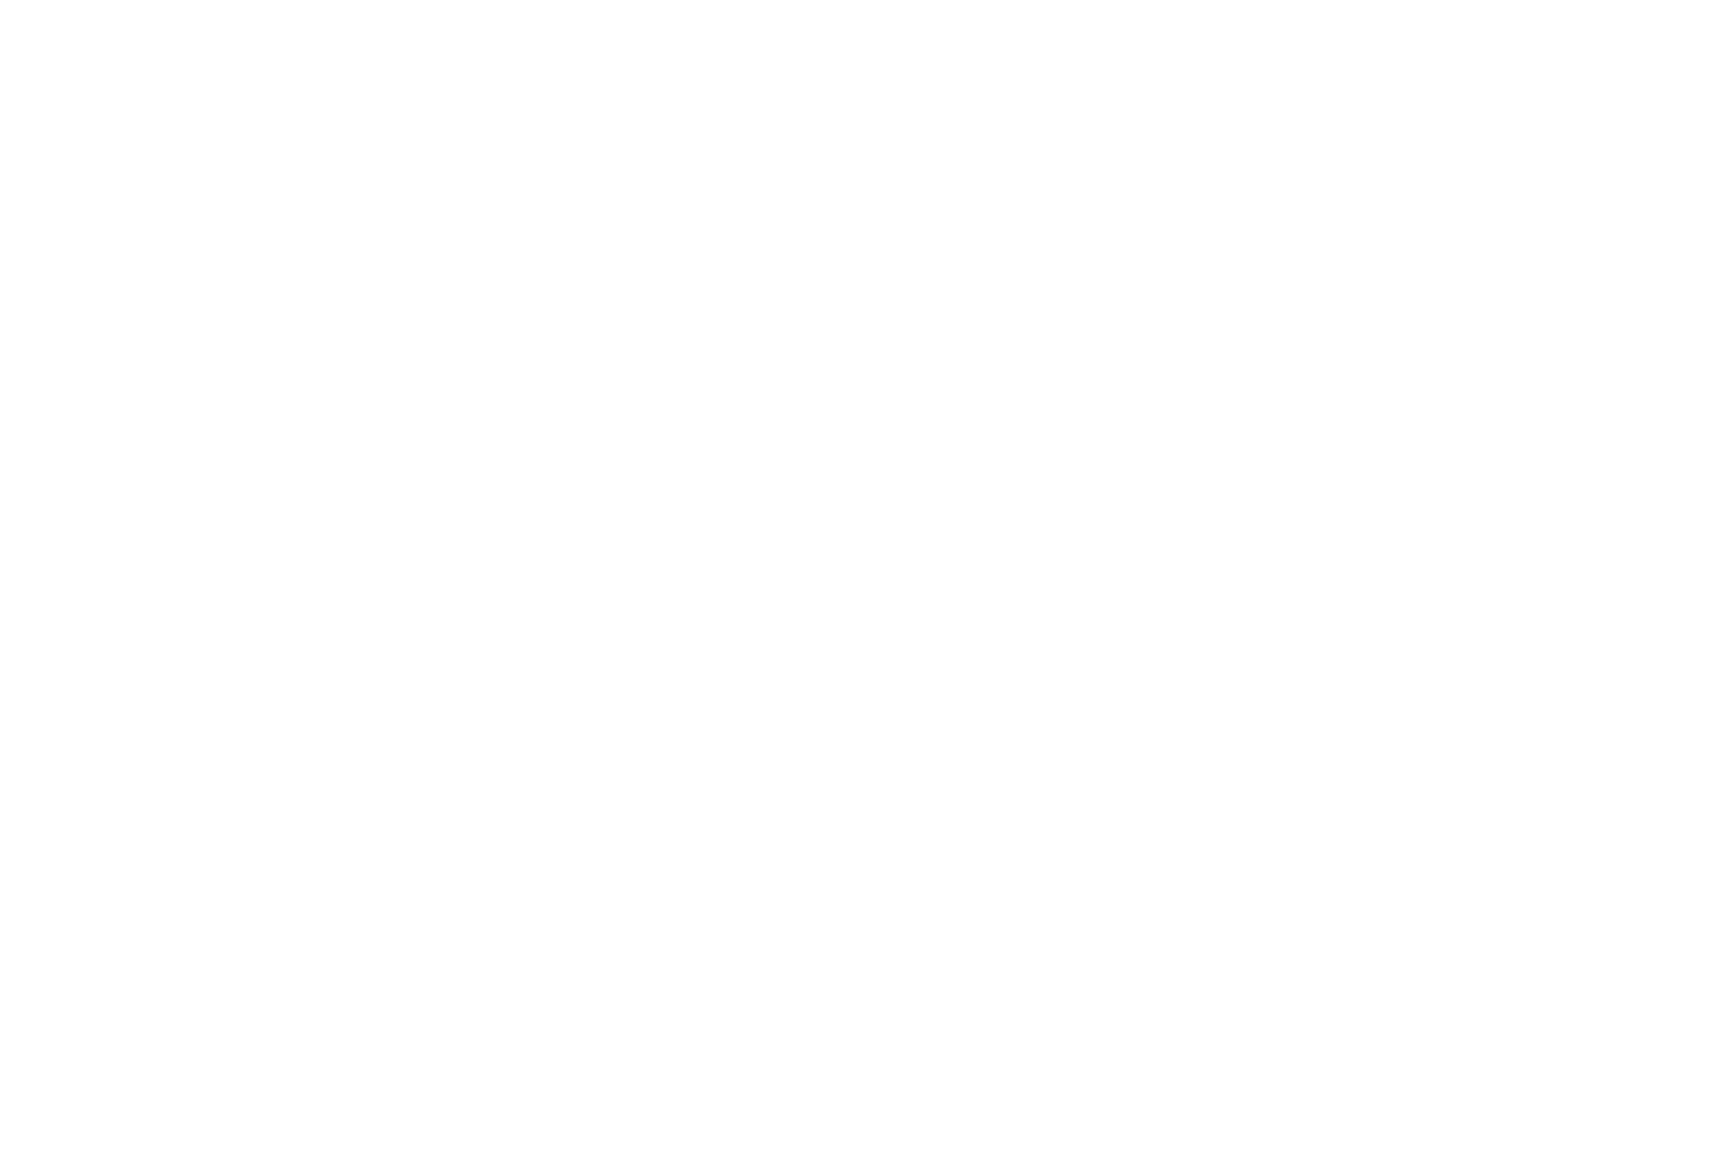 OFFICIAL SELECTION - Weird Local Film Festival - 2018.png